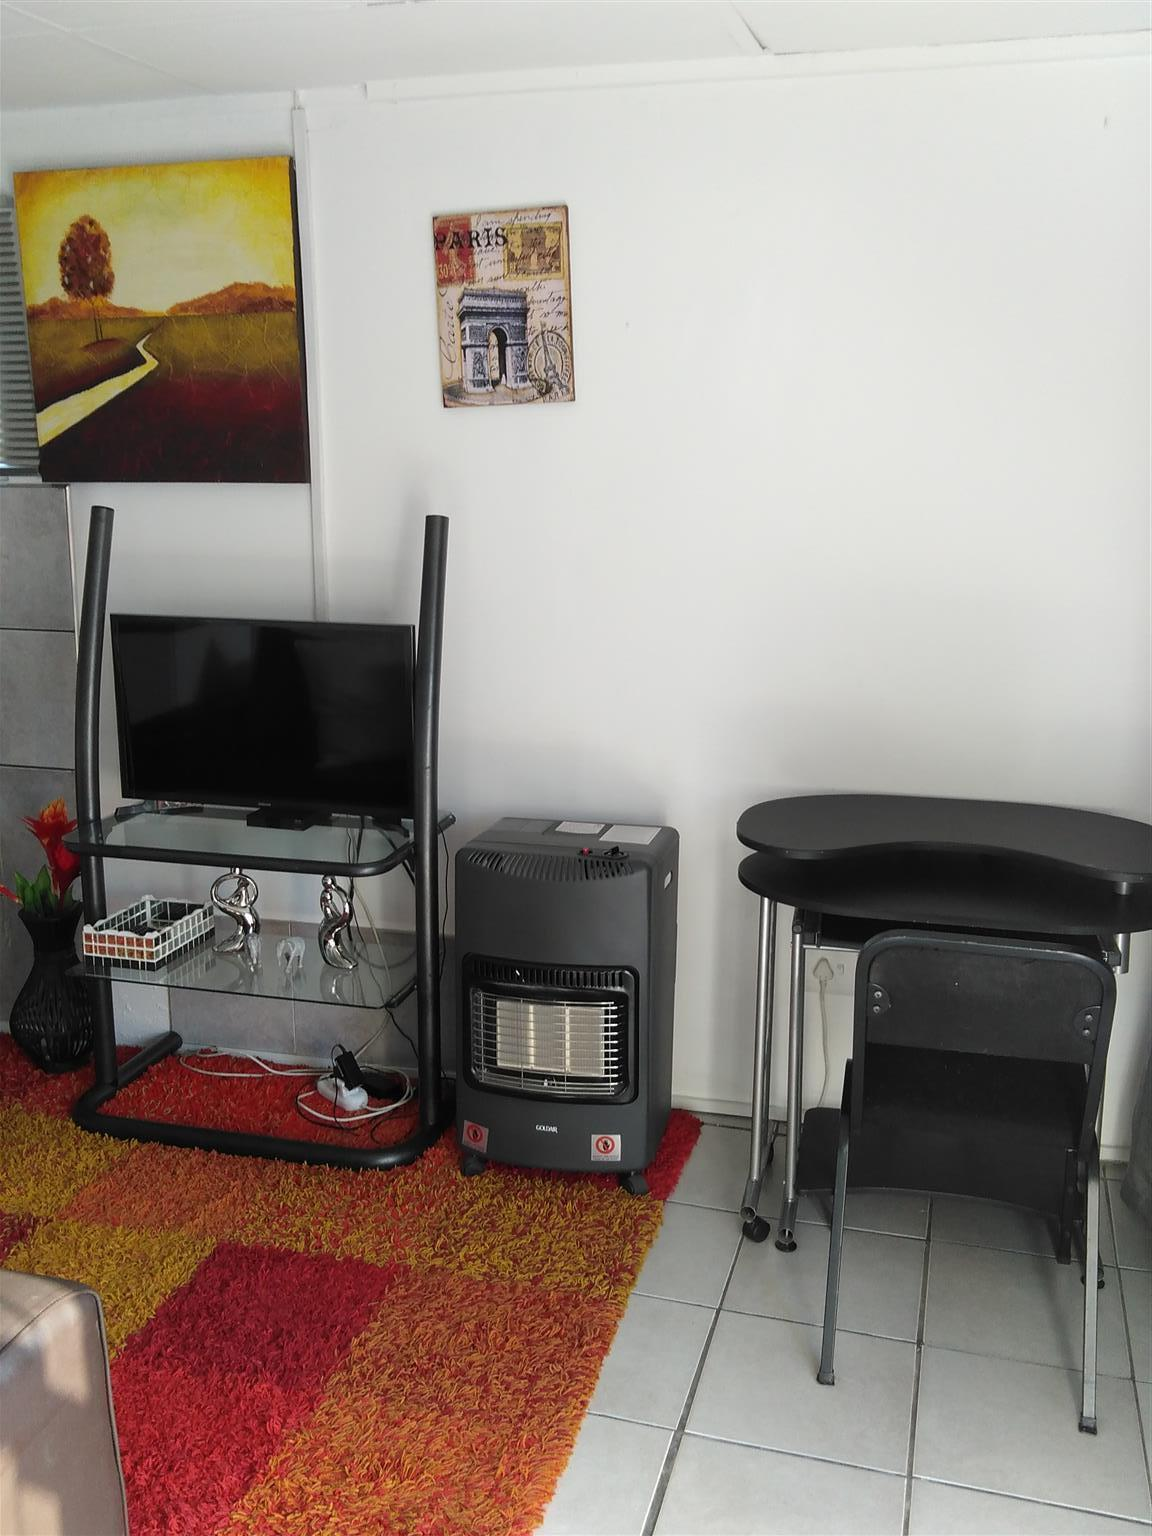 Fully Furnished Flat for Rent (Bachelors) in Glen Marias-R5000 incl W/Light, Covered parking